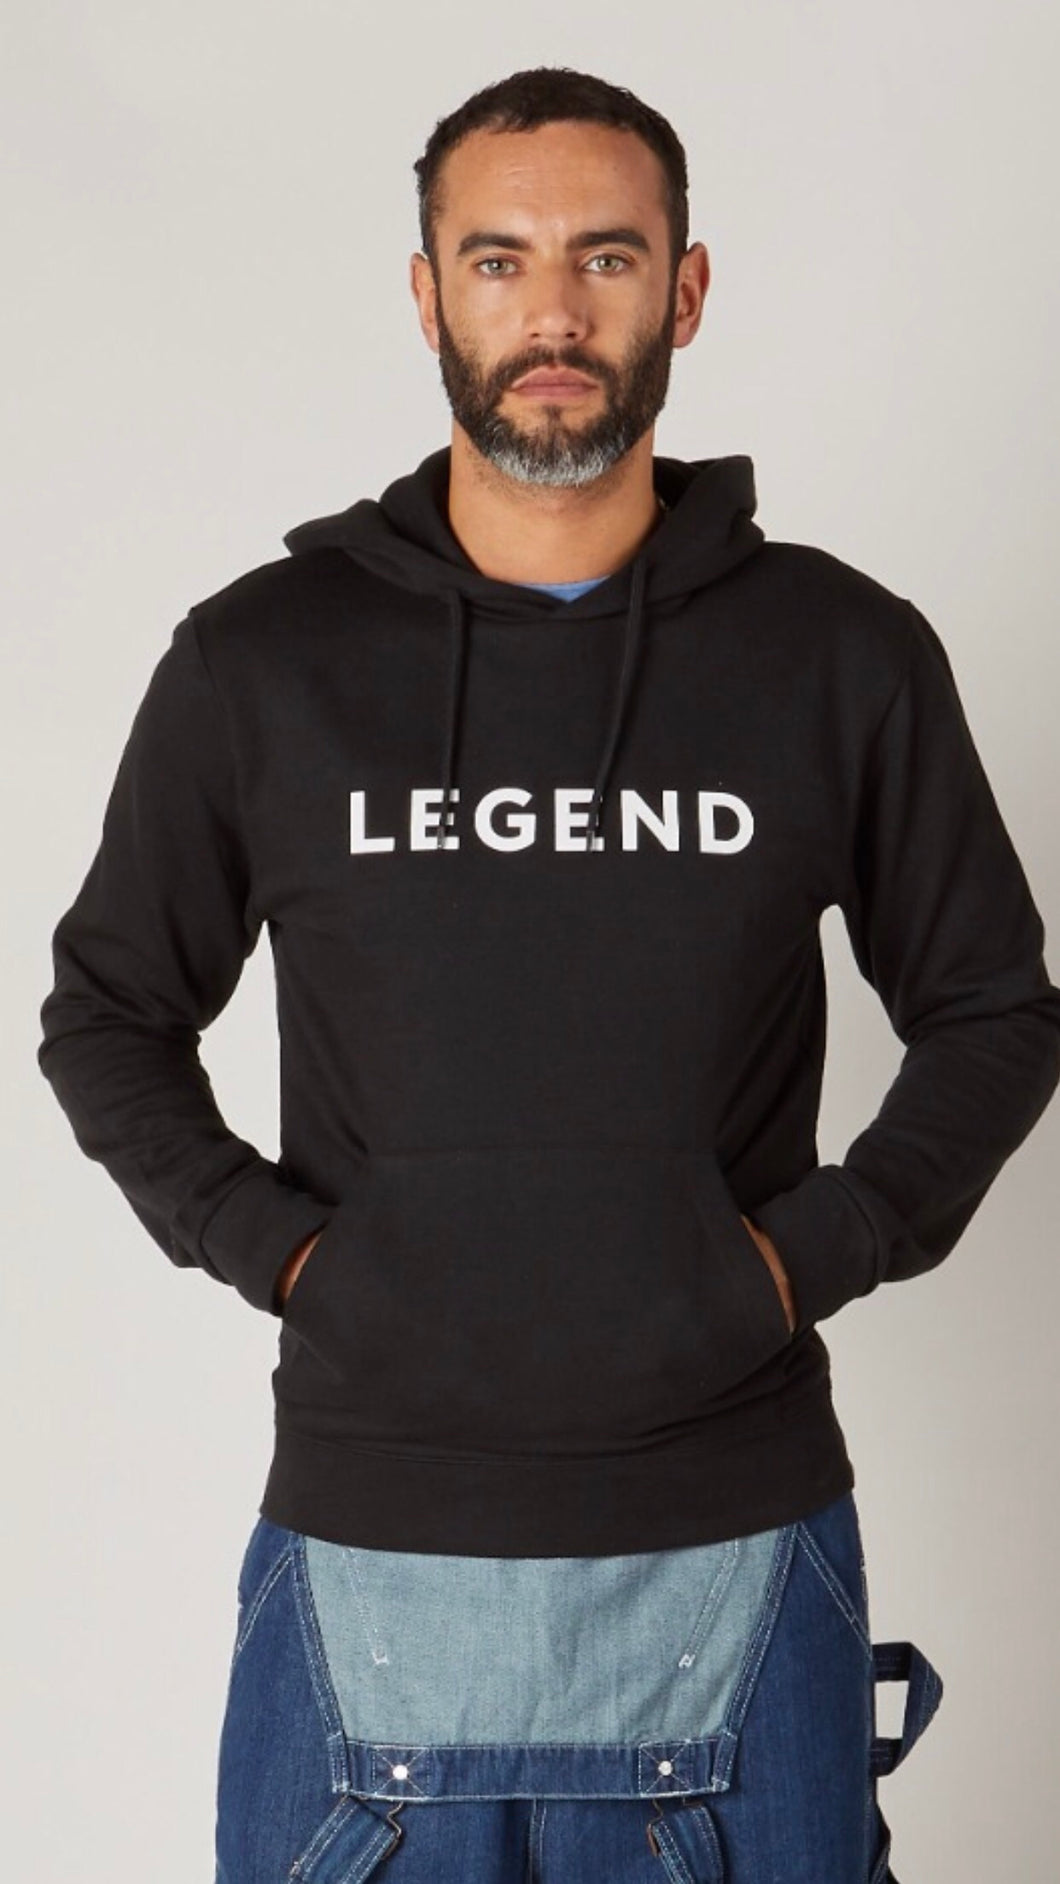 Legend Hooded Sweatshirt